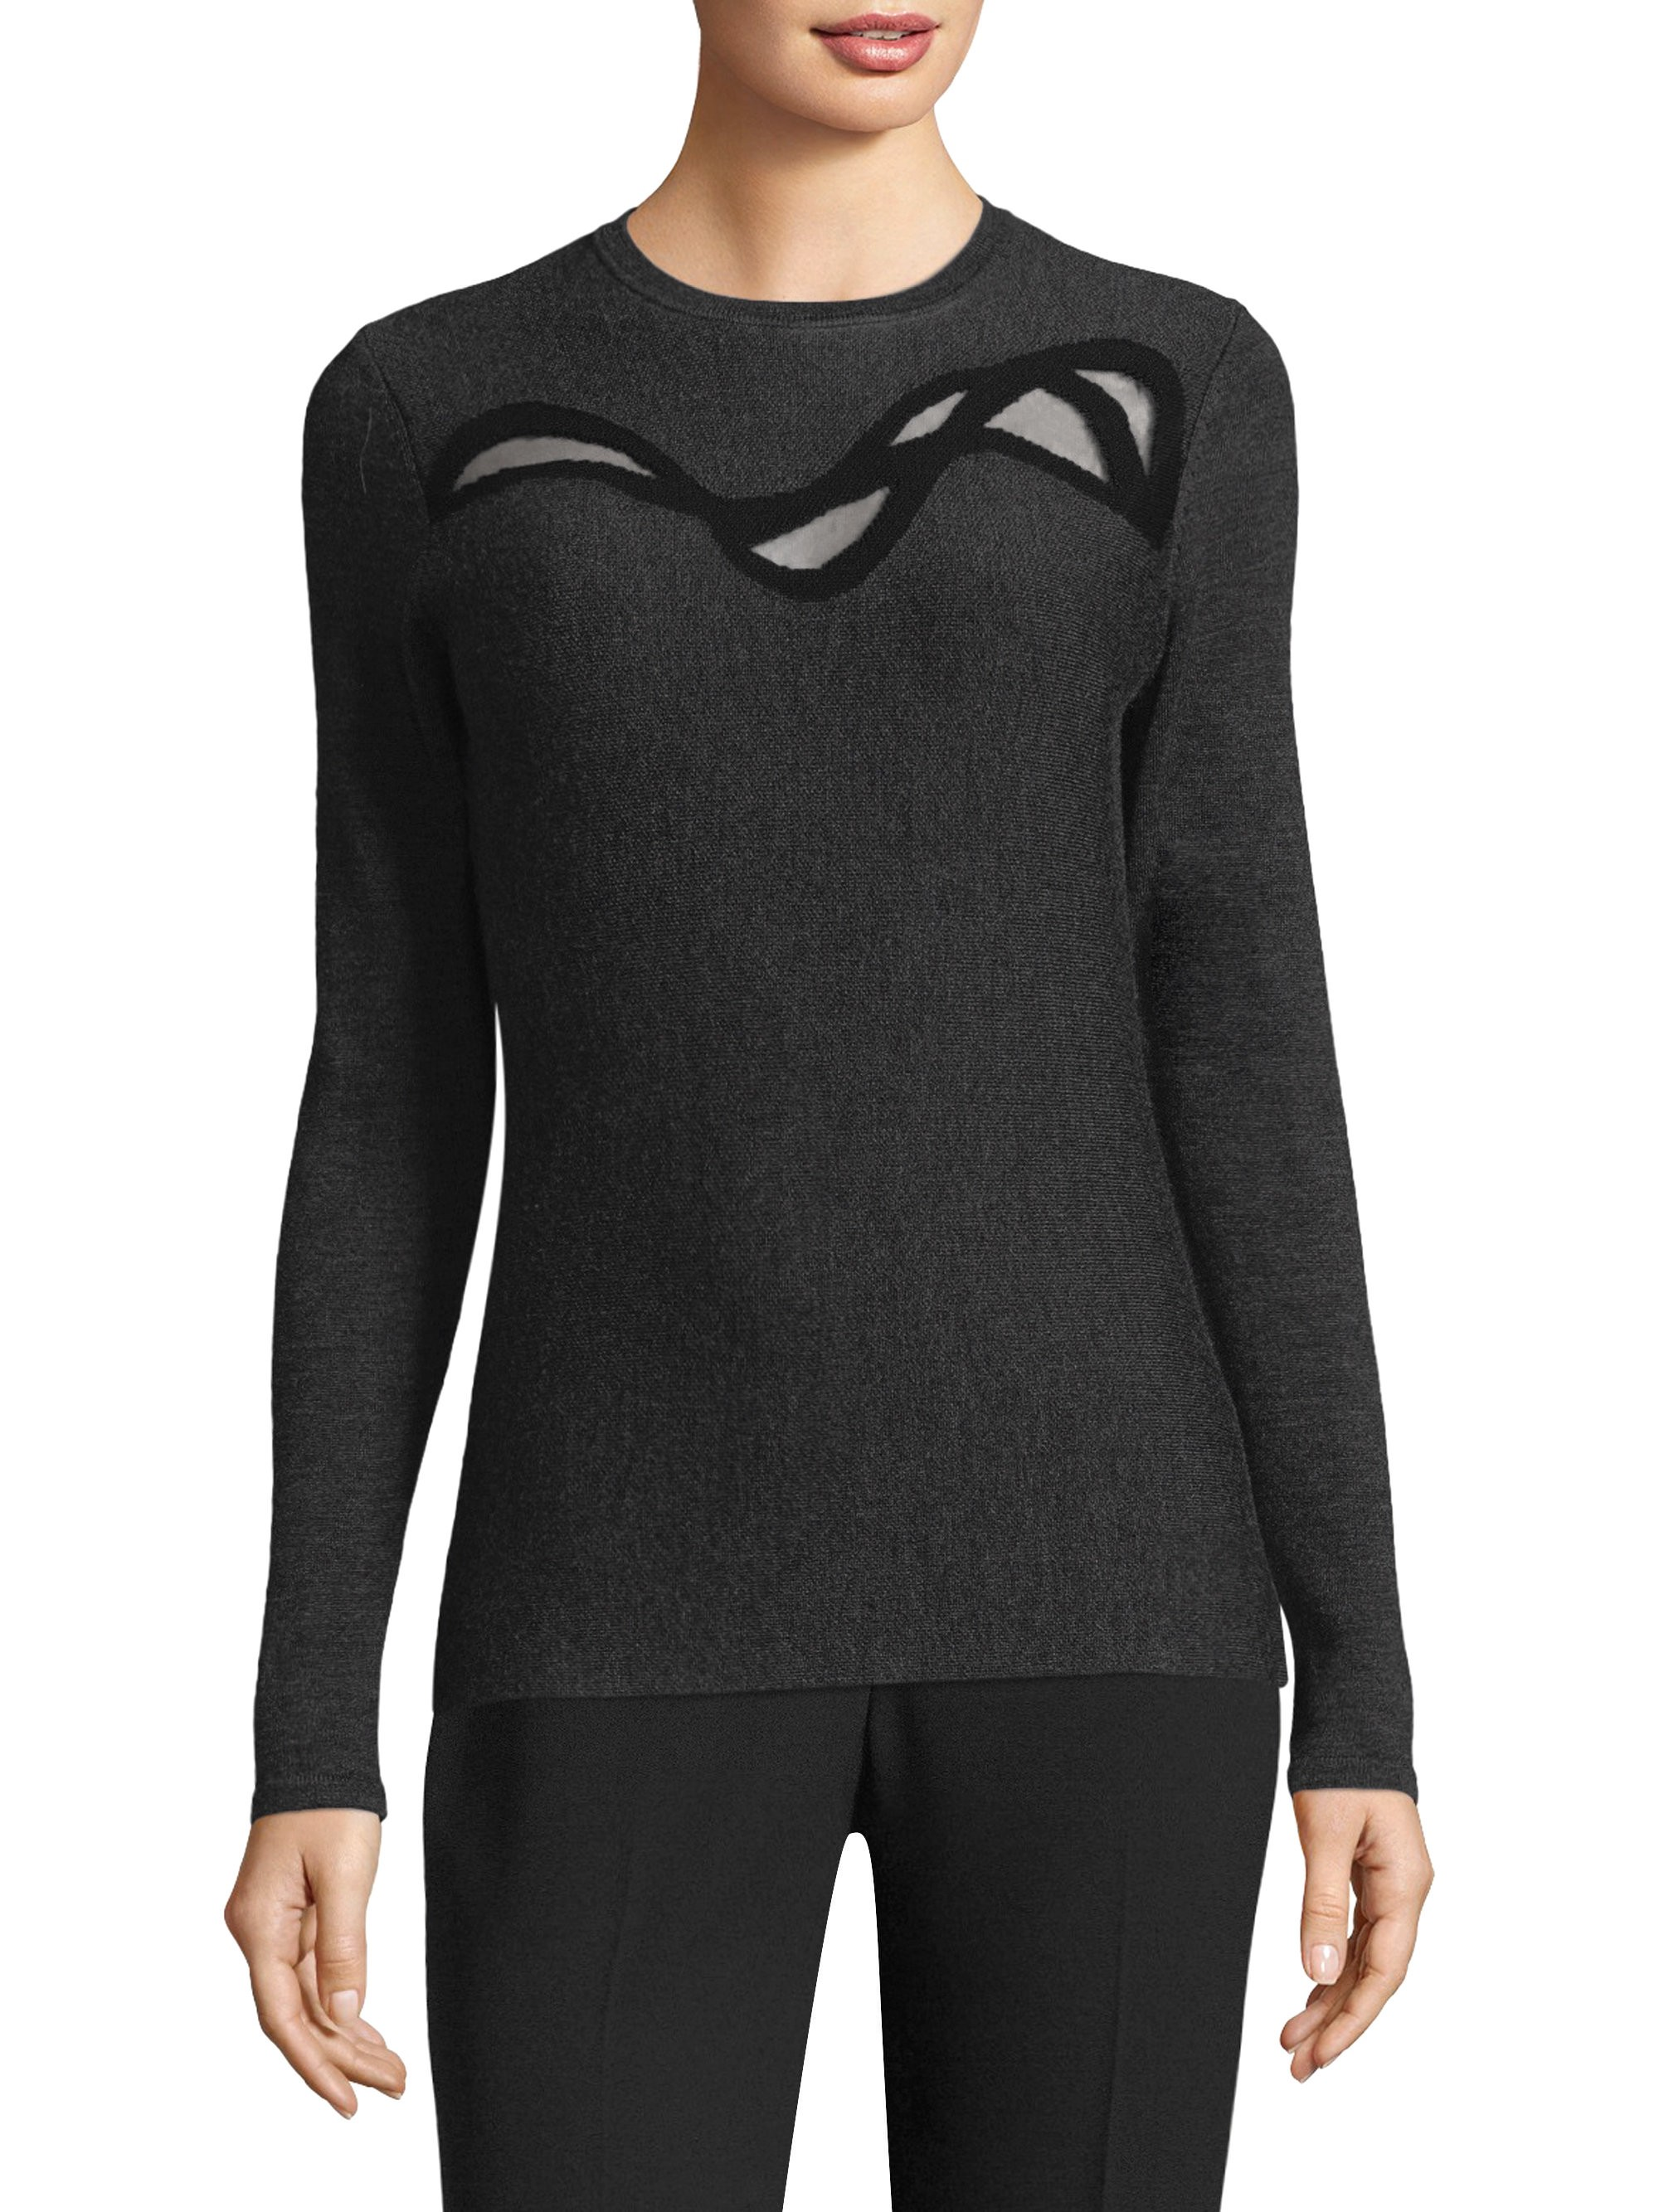 df840559a2 Elie Tahari Textured Merino Wool Sweater - Charcoal Melange X-Small ...